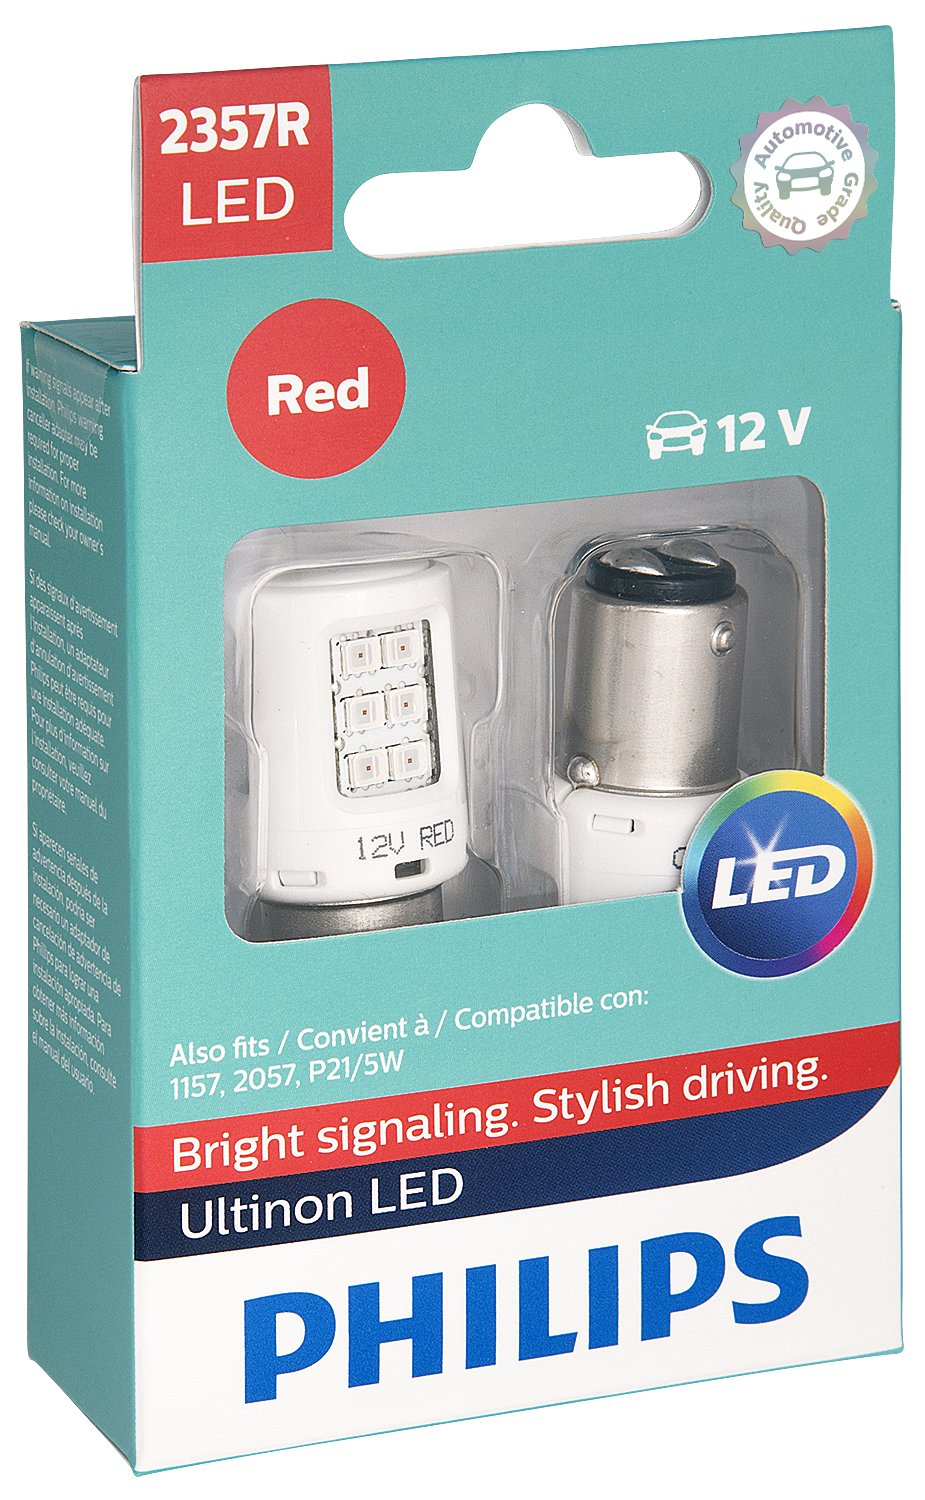 Philips 2357 Ultinon LED Bulb 2 Pack 2357RLED Red